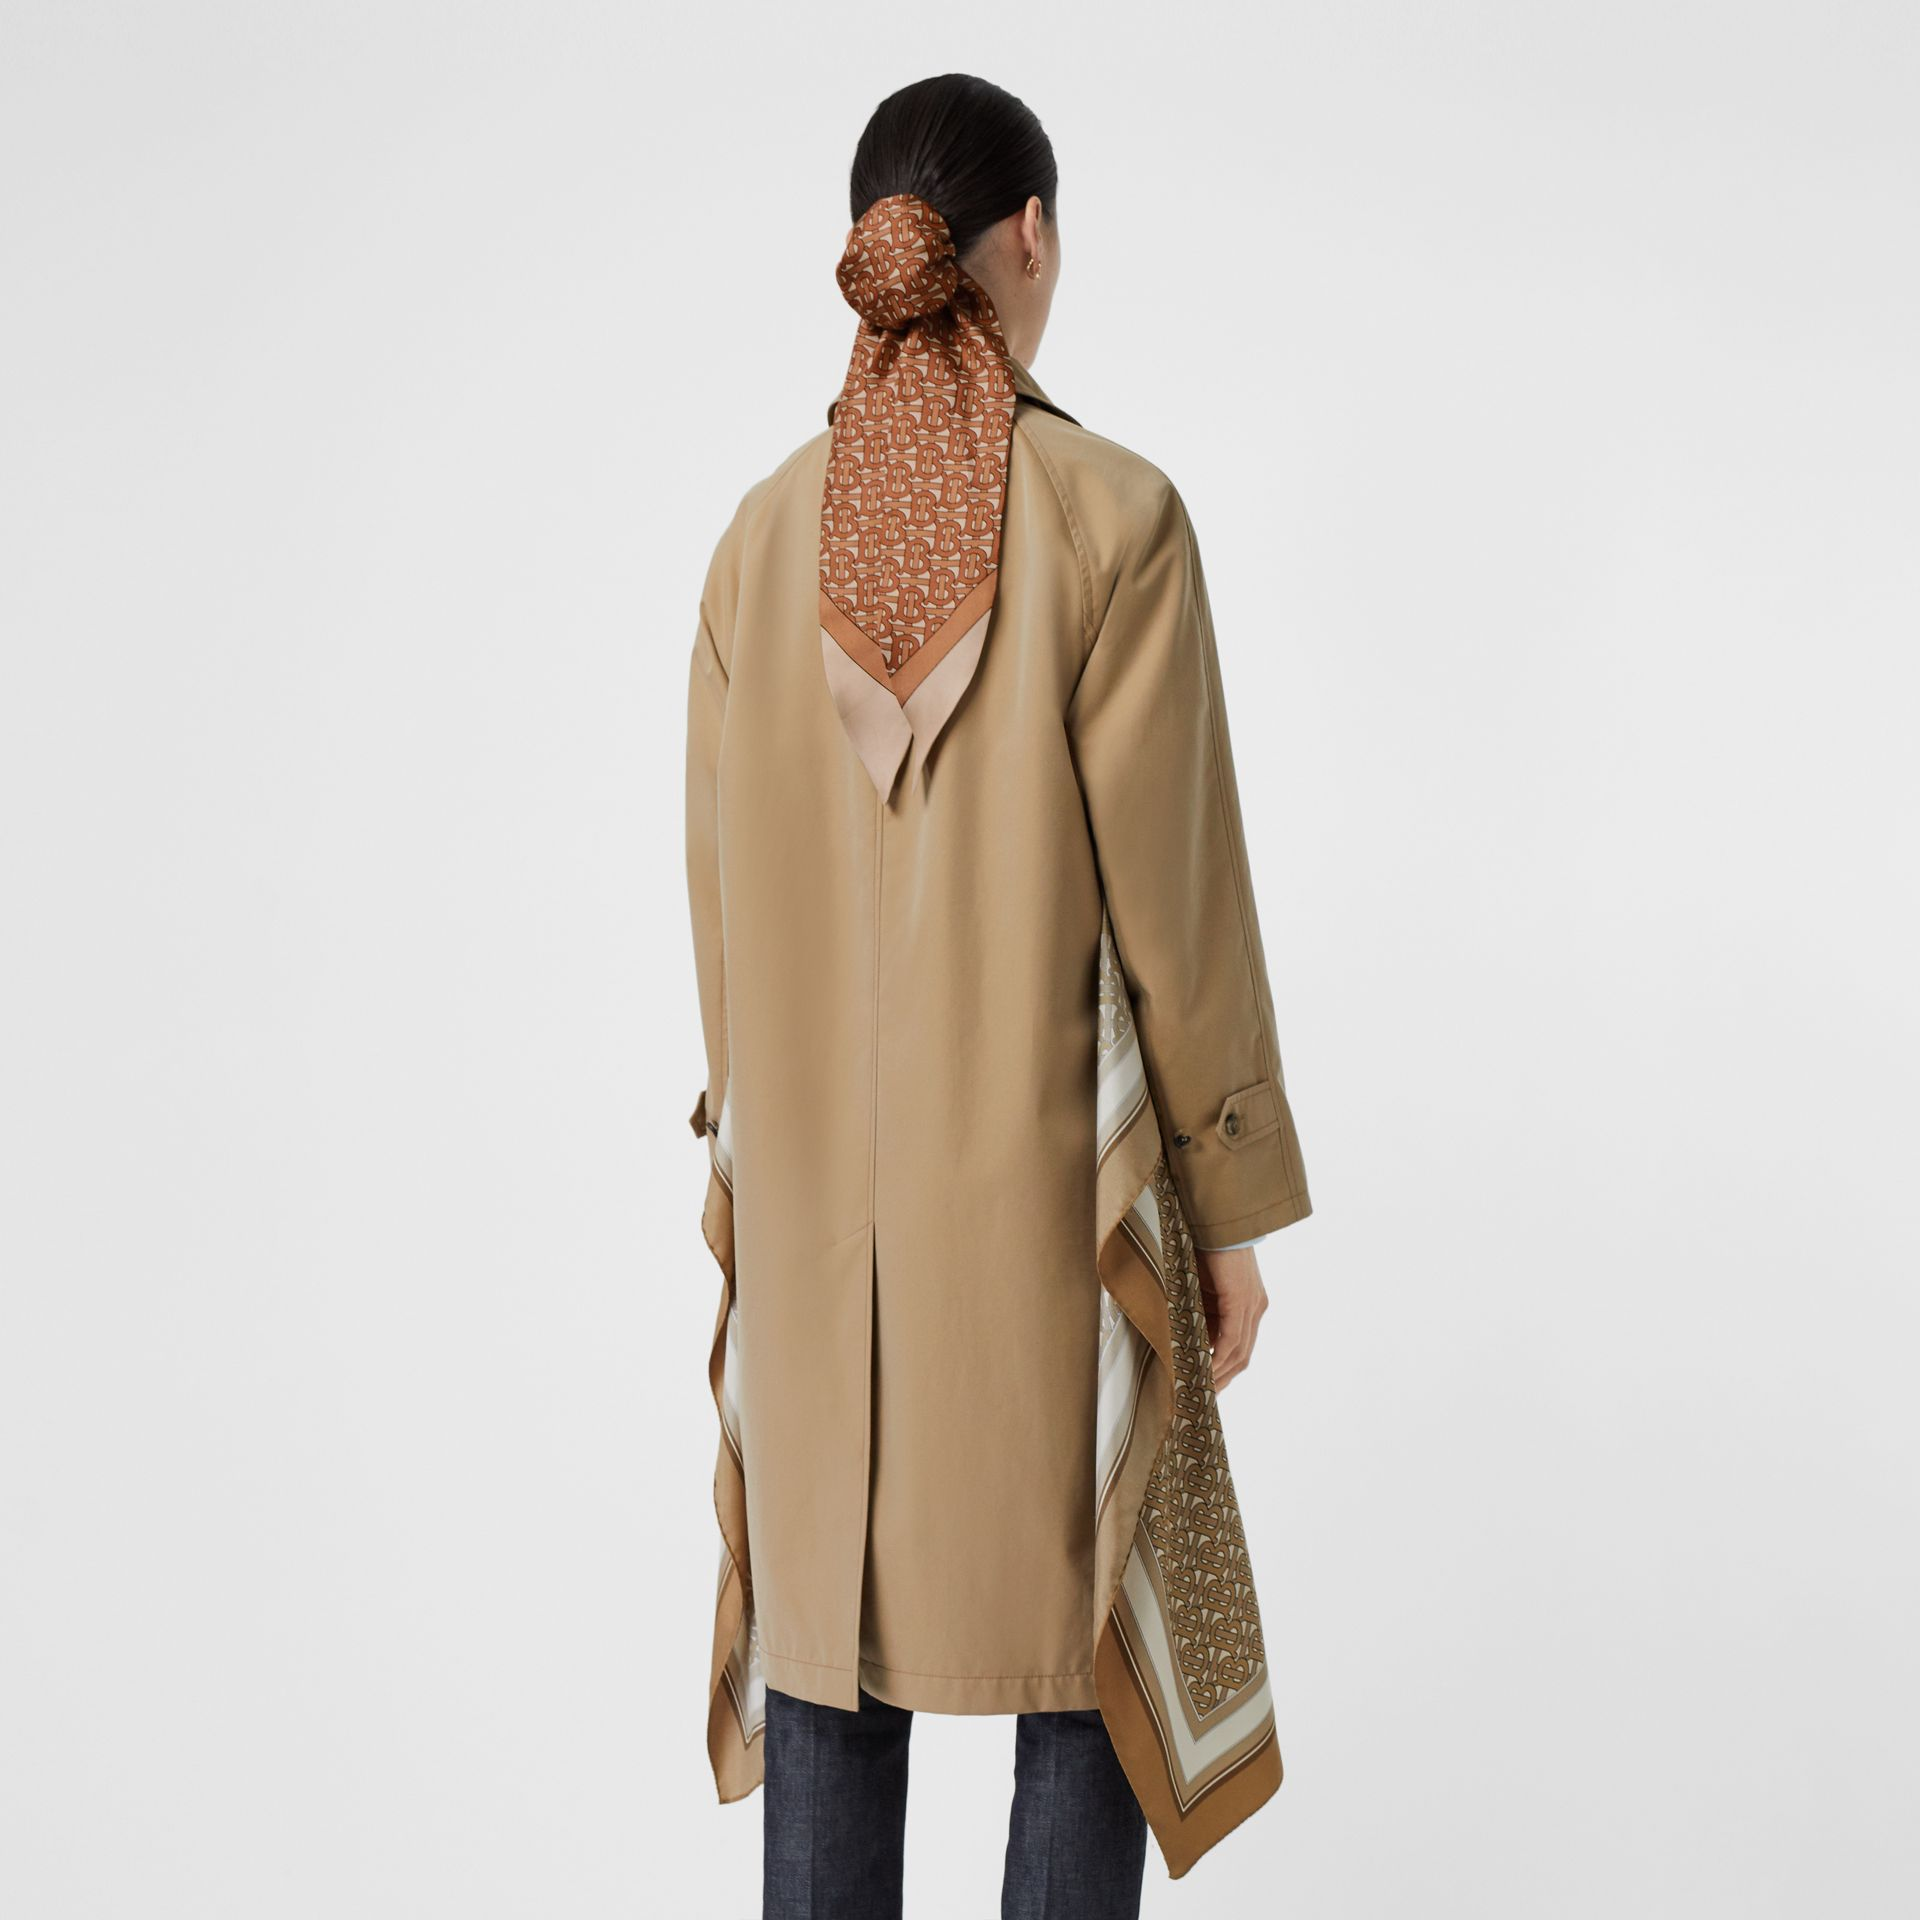 Monogram Print Silk Panel Cotton Car Coat in Pale Honey - Women | Burberry Hong Kong S.A.R - gallery image 2